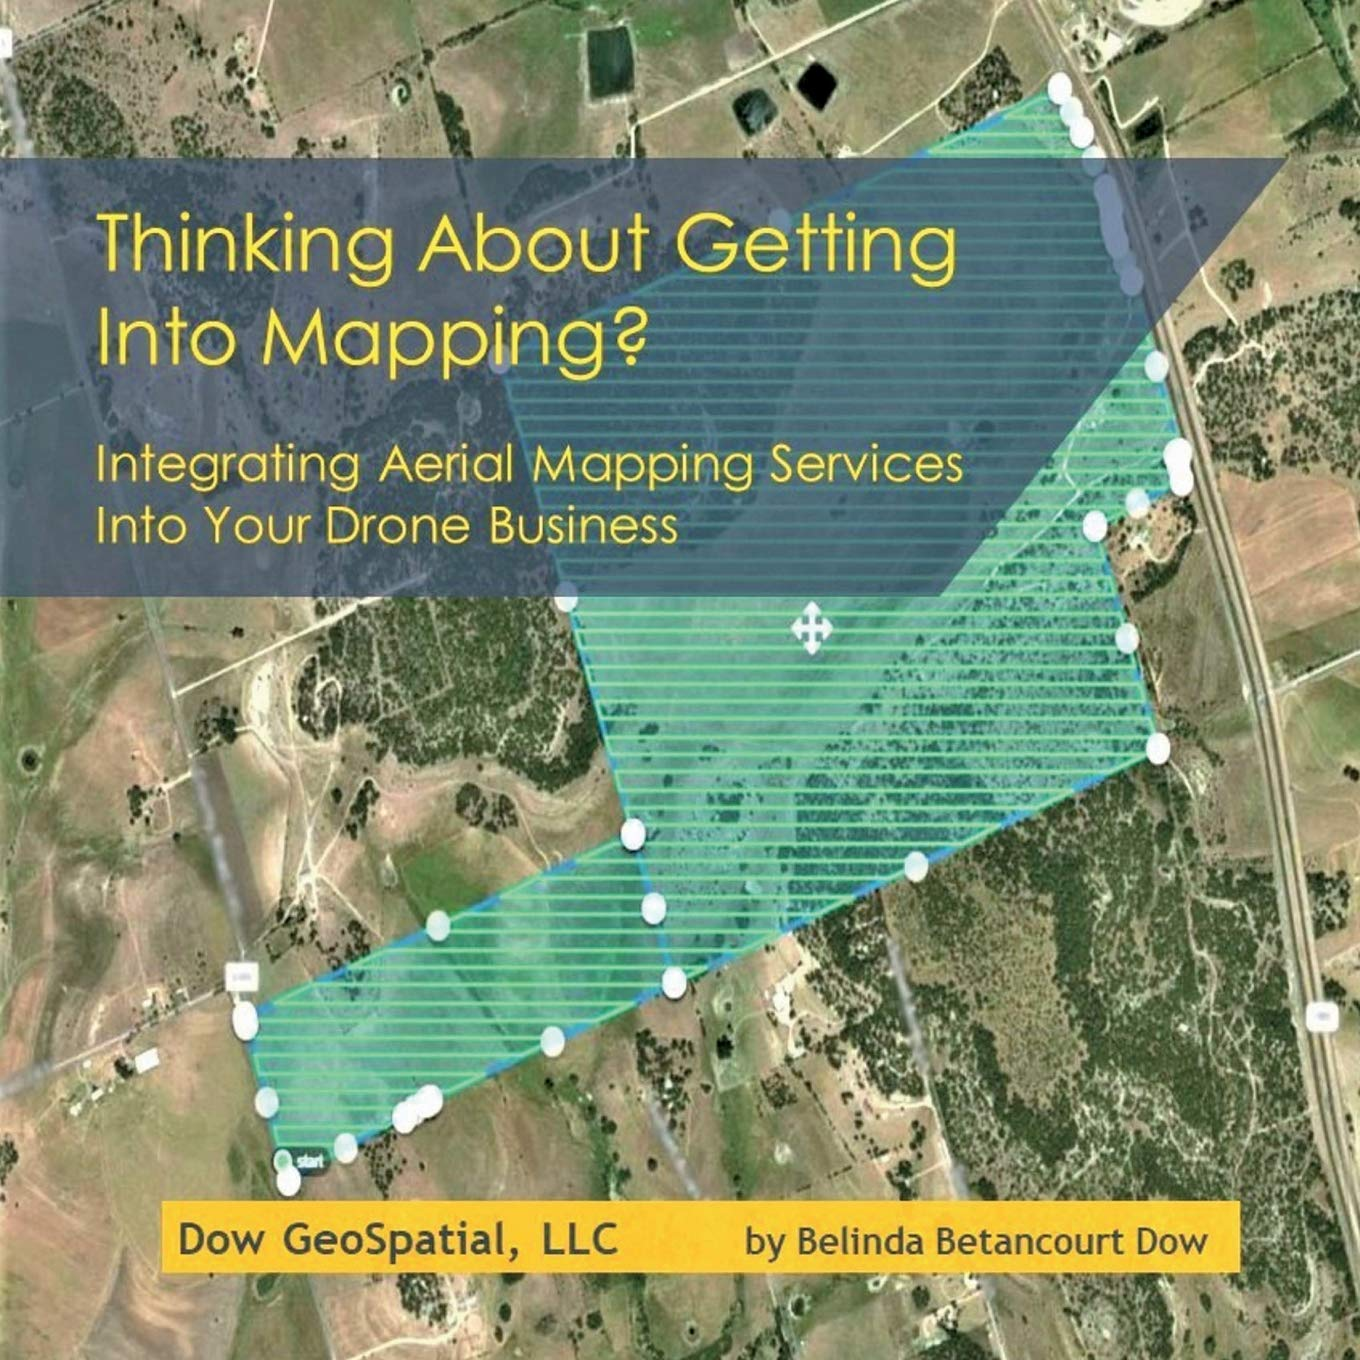 Thinking About Getting Into Mapping?: Integrating Aerial Mapping